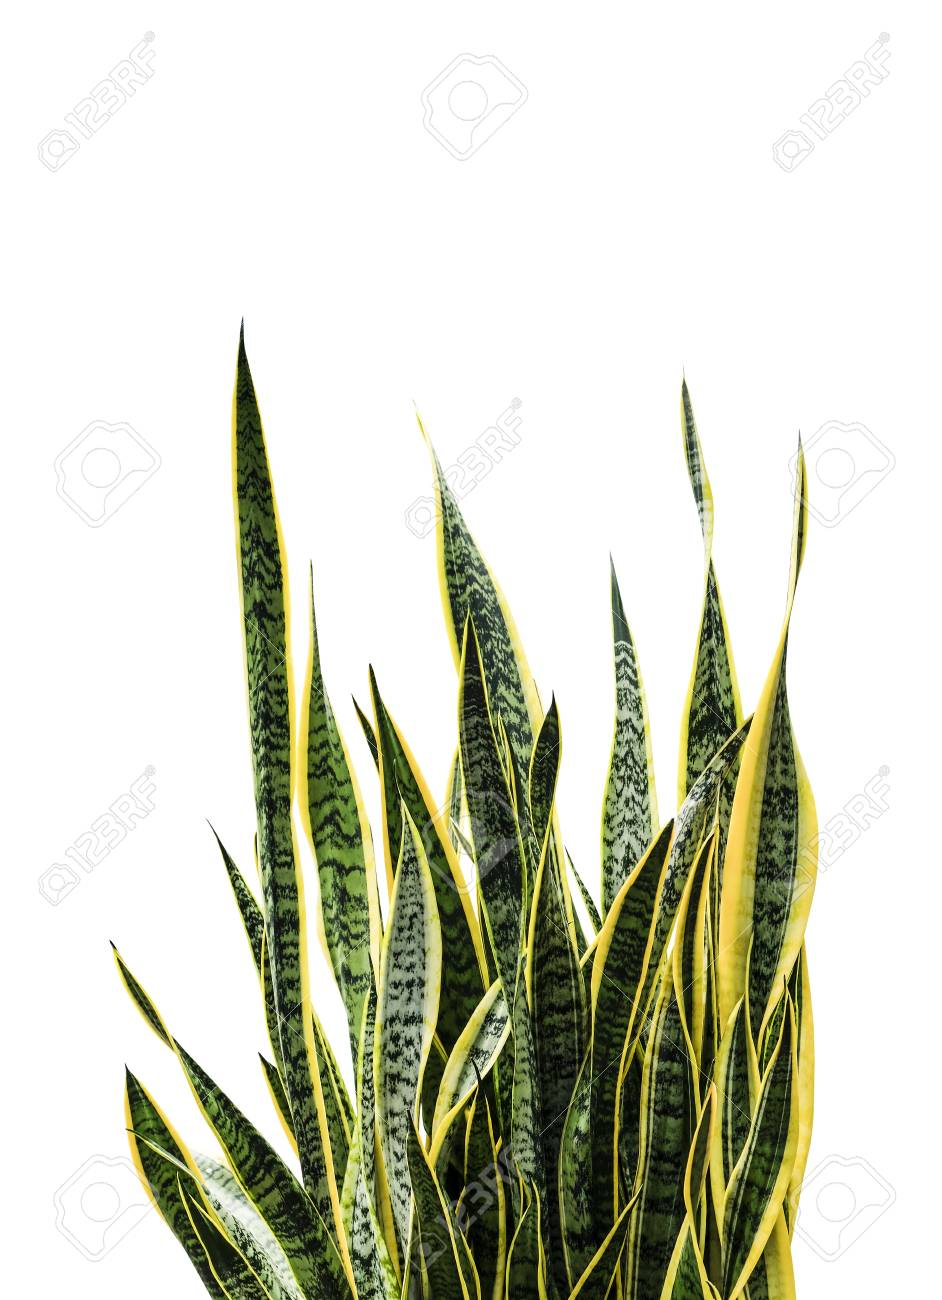 Sansevieria Trifasciata Or Snake Plant Isolated On White Background Stock Photo Picture And Royalty Free Image Image 99050302